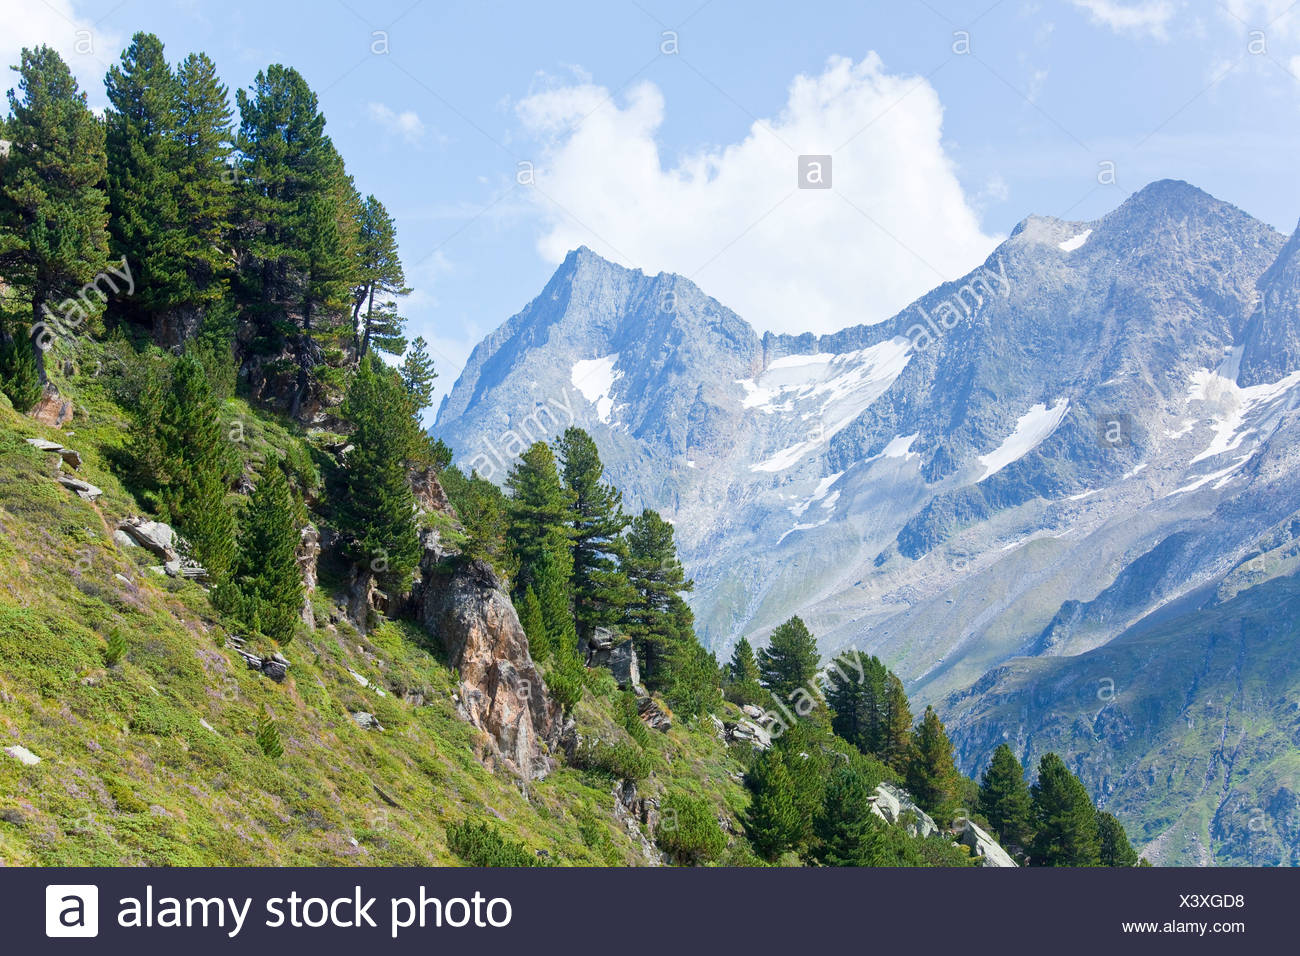 Swiss Pines (Pinus cembra) on a slope in Zillertal Alps, Tyrol, Austria, high angle view - Stock Image